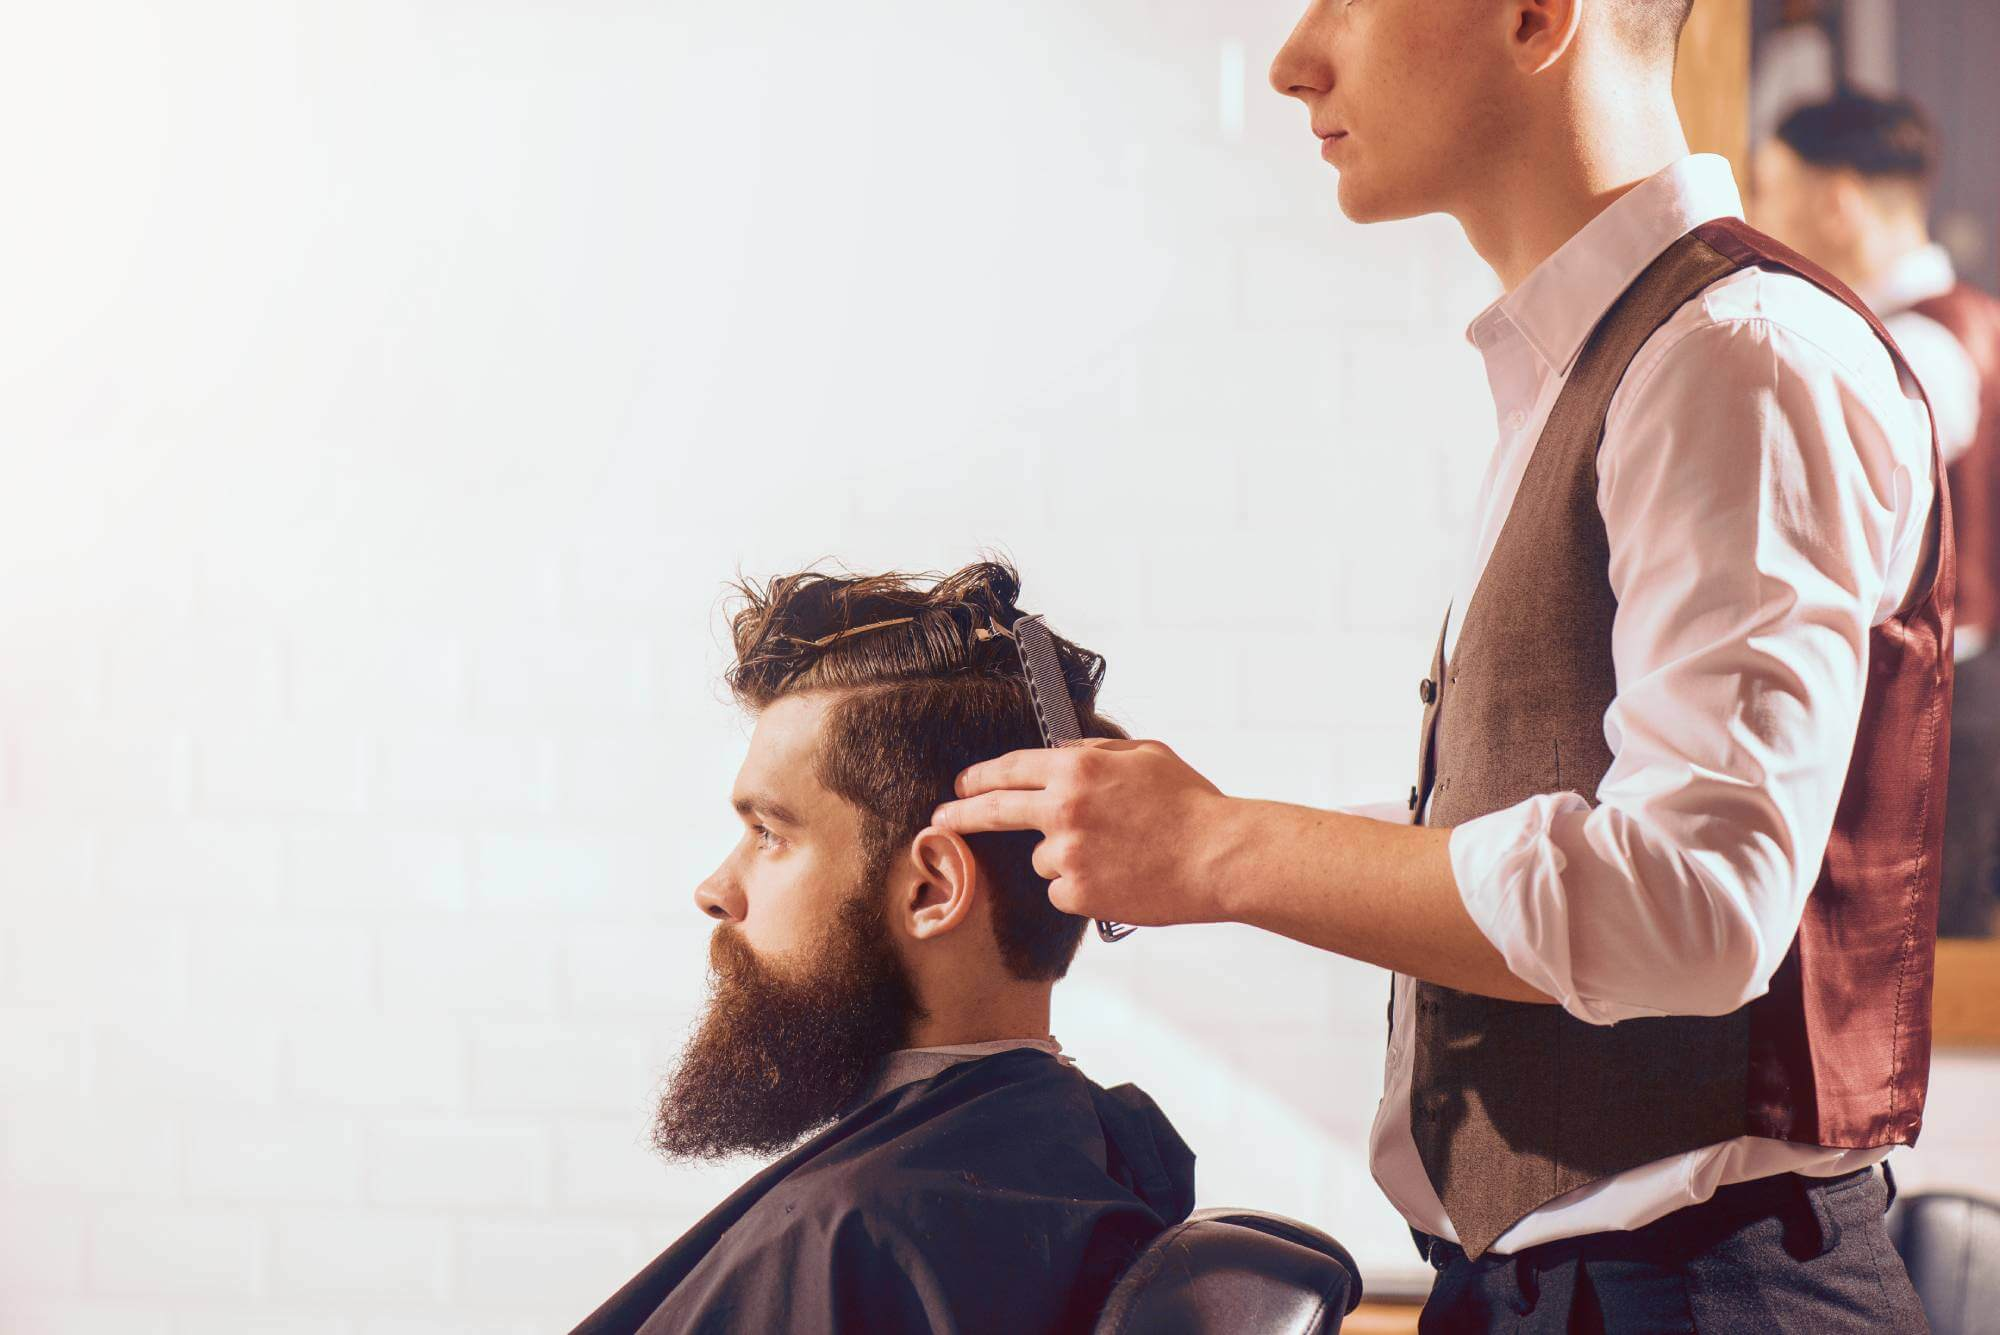 Haircuts for Men Who Suffer from Hair Loss